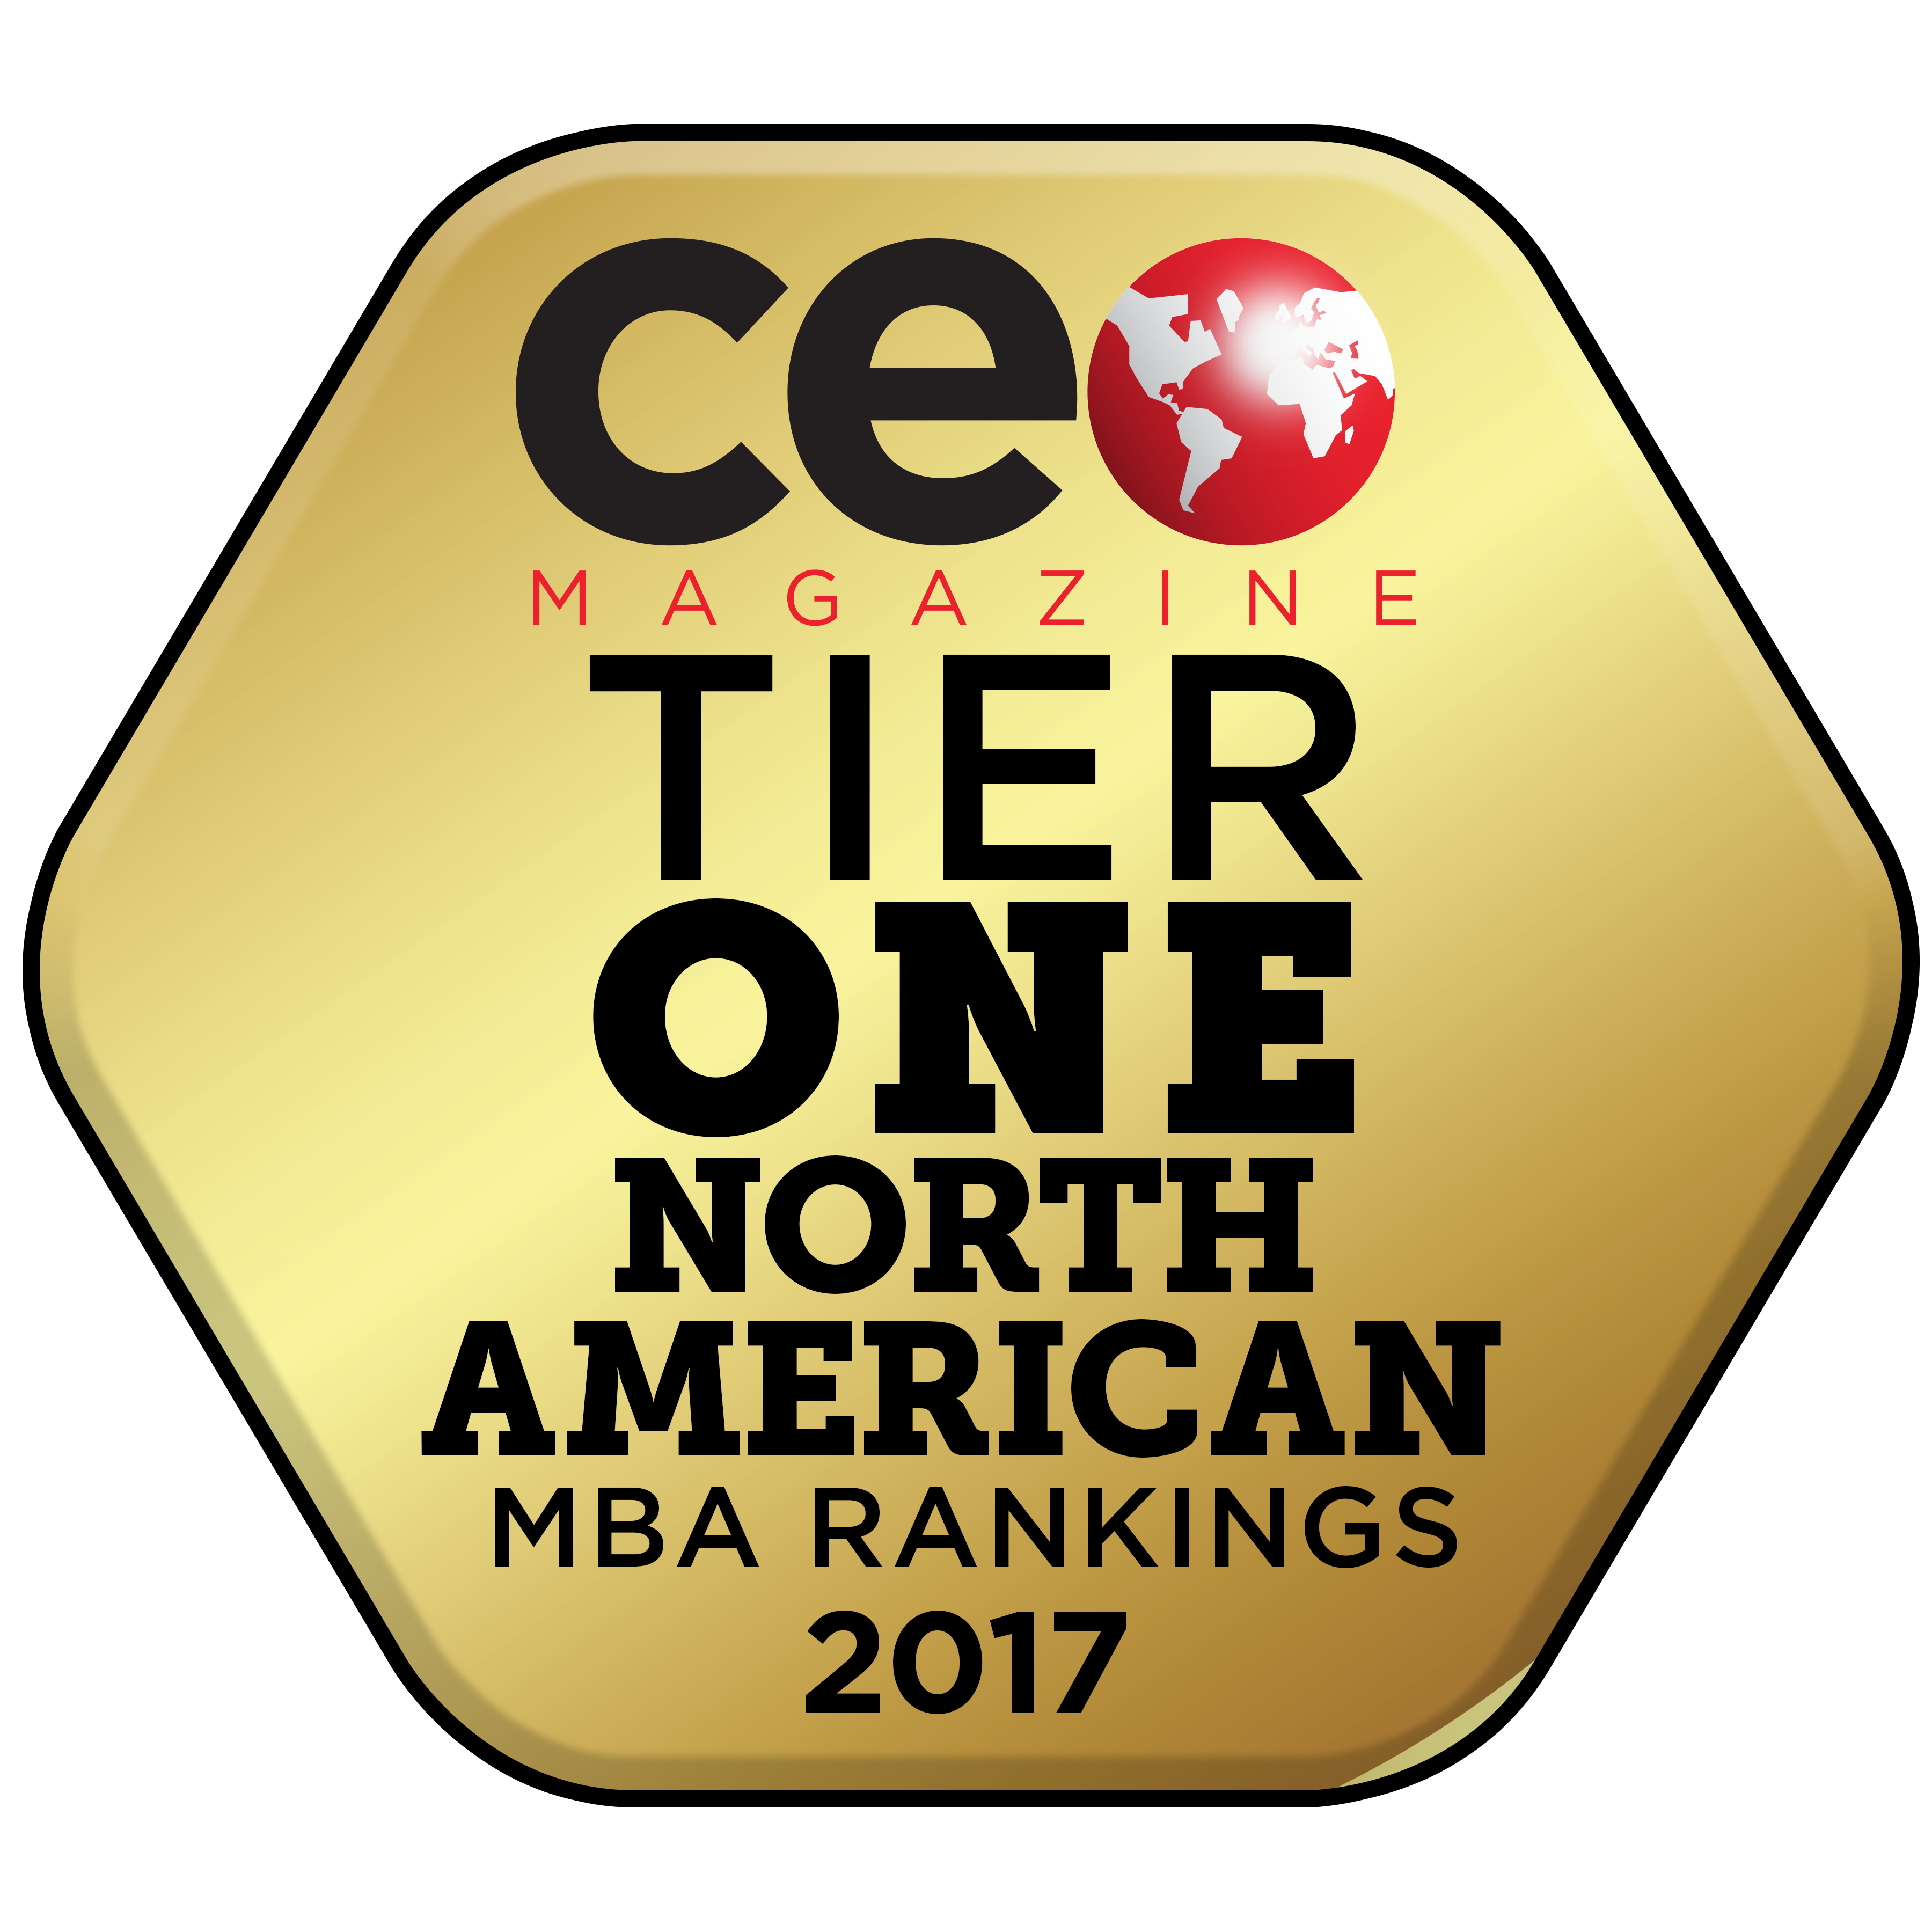 Willamette Mba Earns Tier 1 Mark From Ceo Magazine